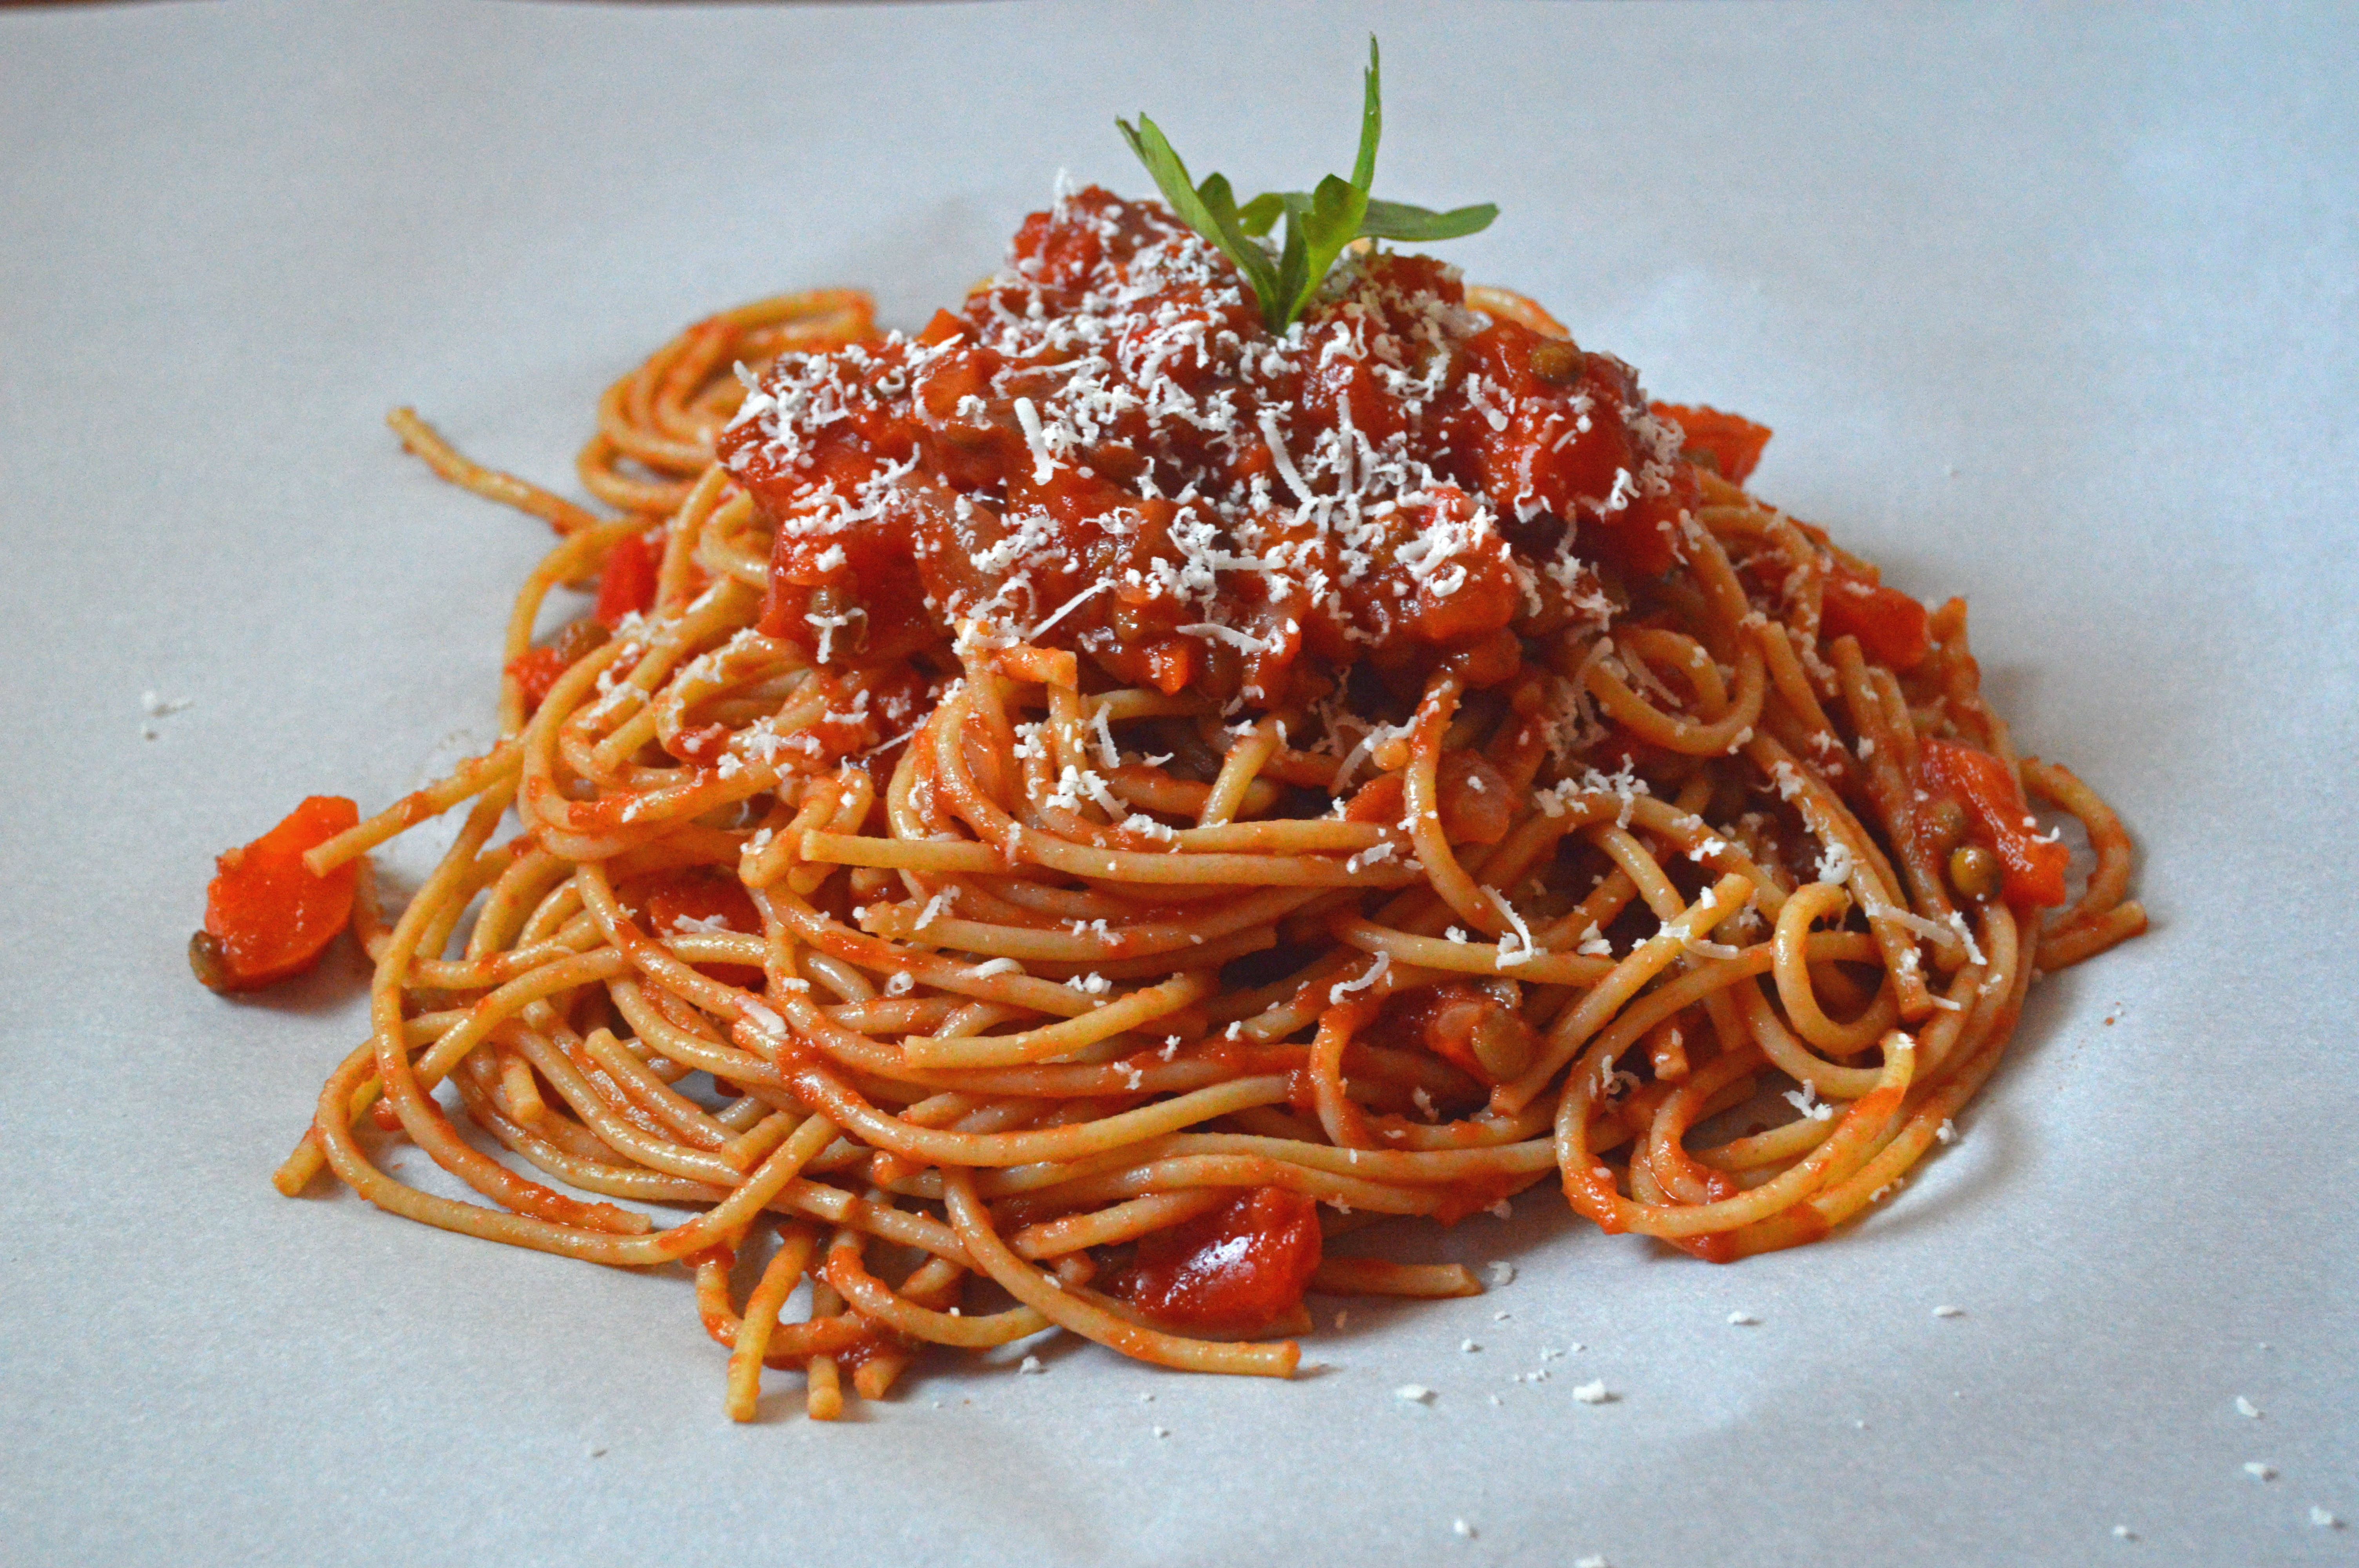 Spaghetti, Authentic Italian food for dine-in, pick-up or delivery, Poway, San Diego